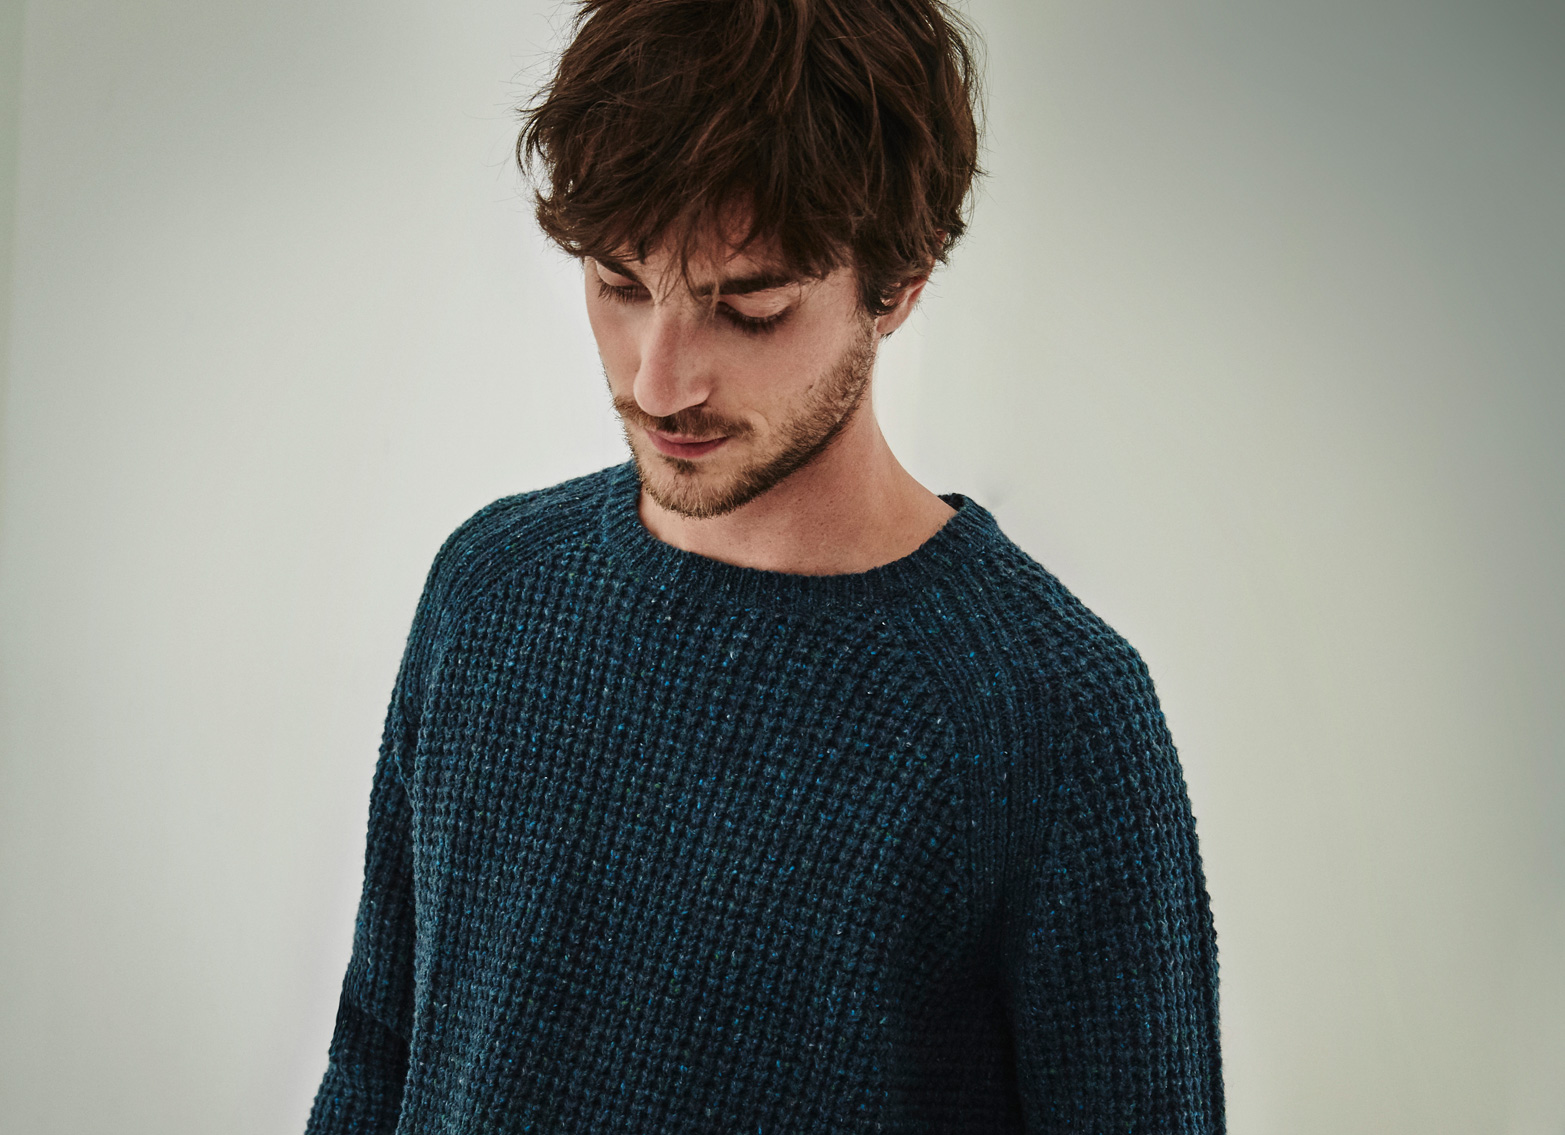 Speckled Sweater - Knitwear AD Man  -  Adolfo Dominguez